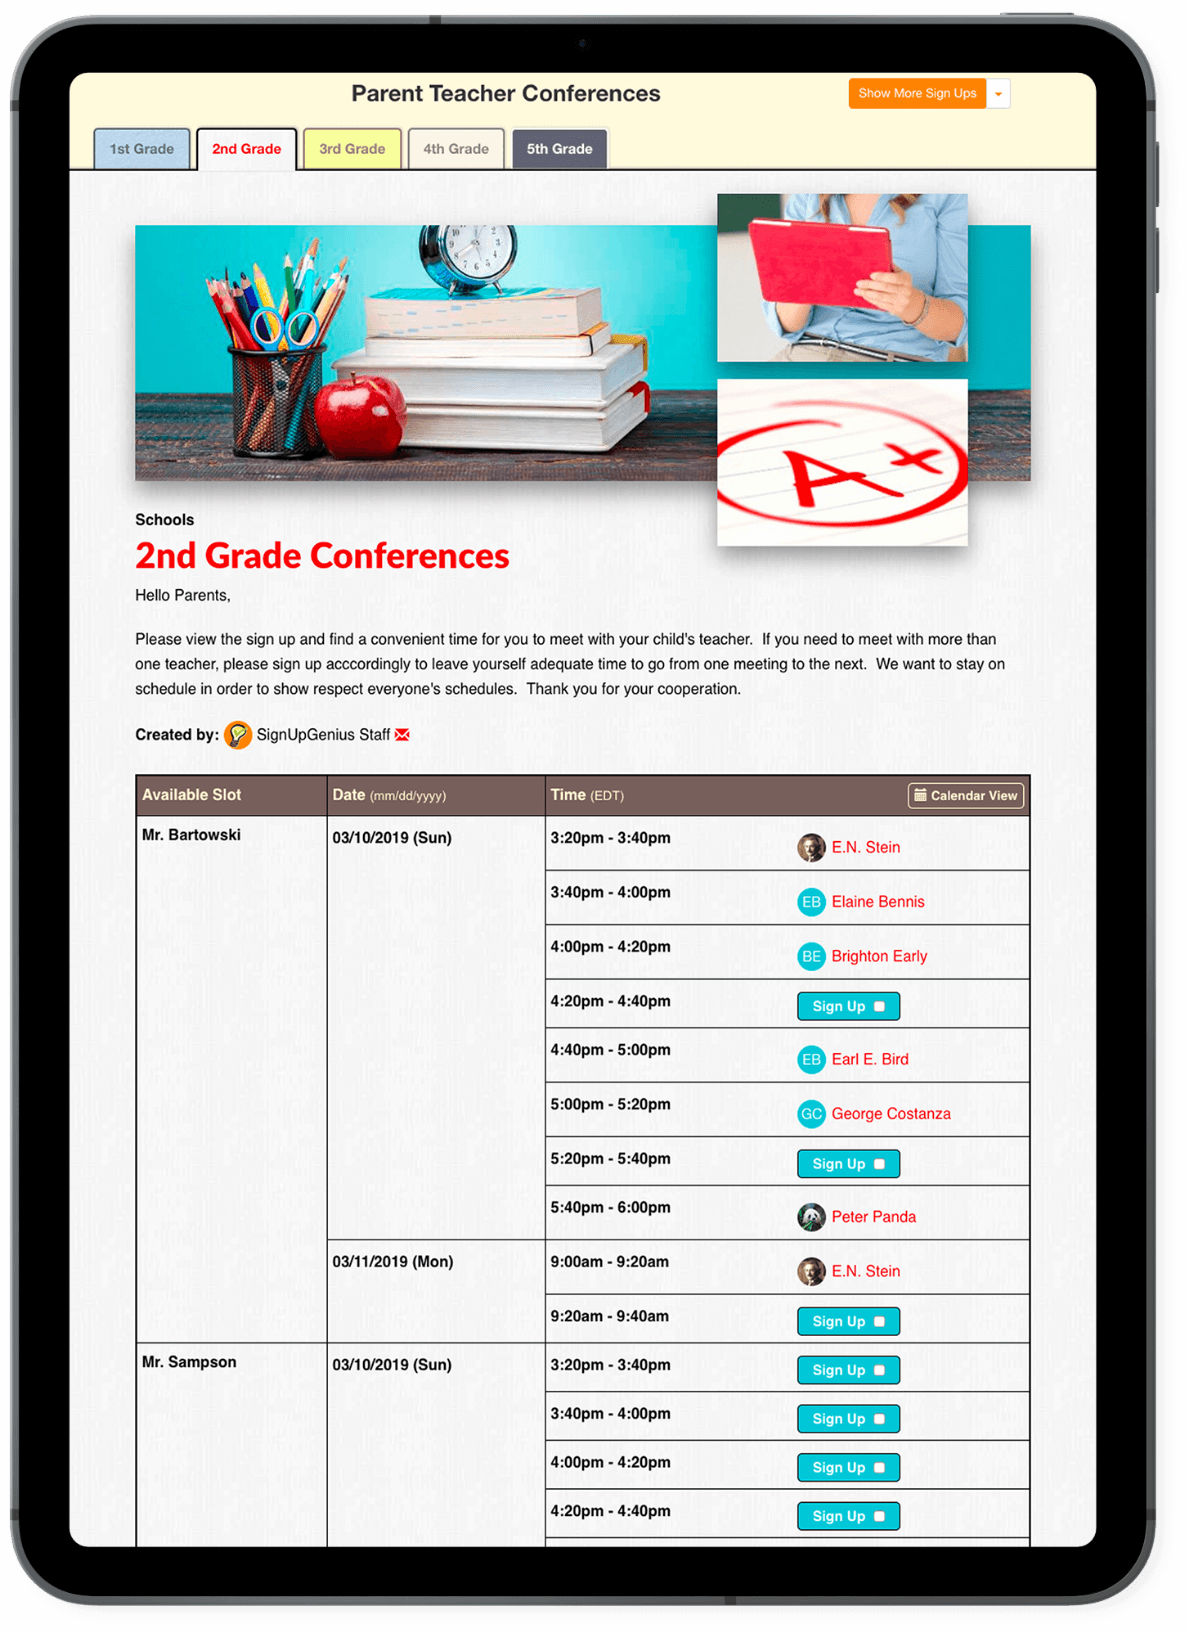 Parent Teacher Conference Sign Up on iPad